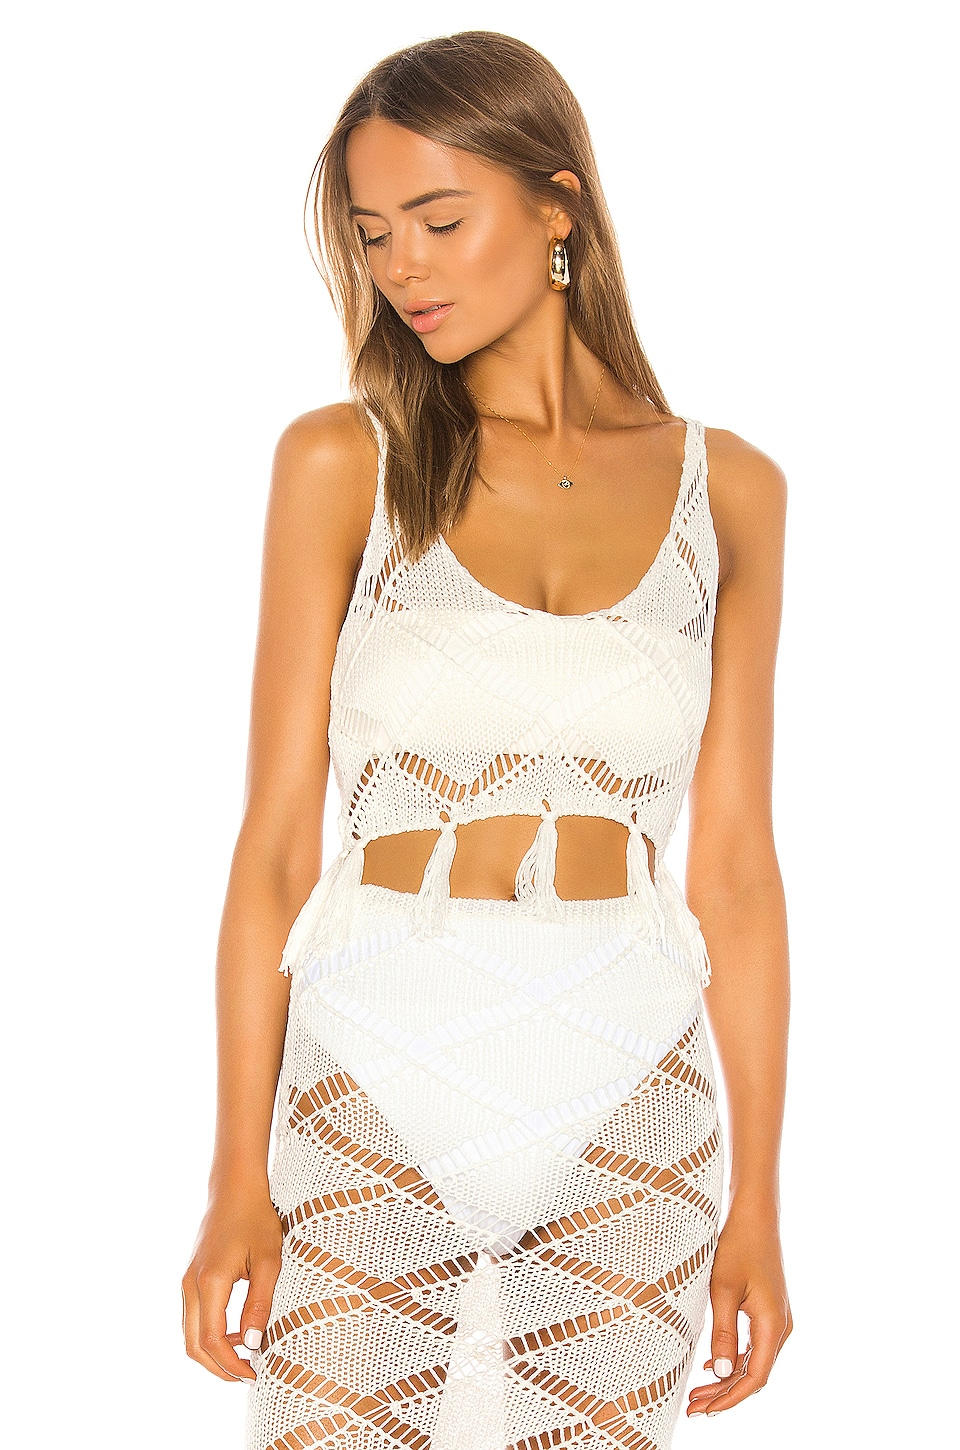 Shaycation x REVOLVE Bell Crop in White